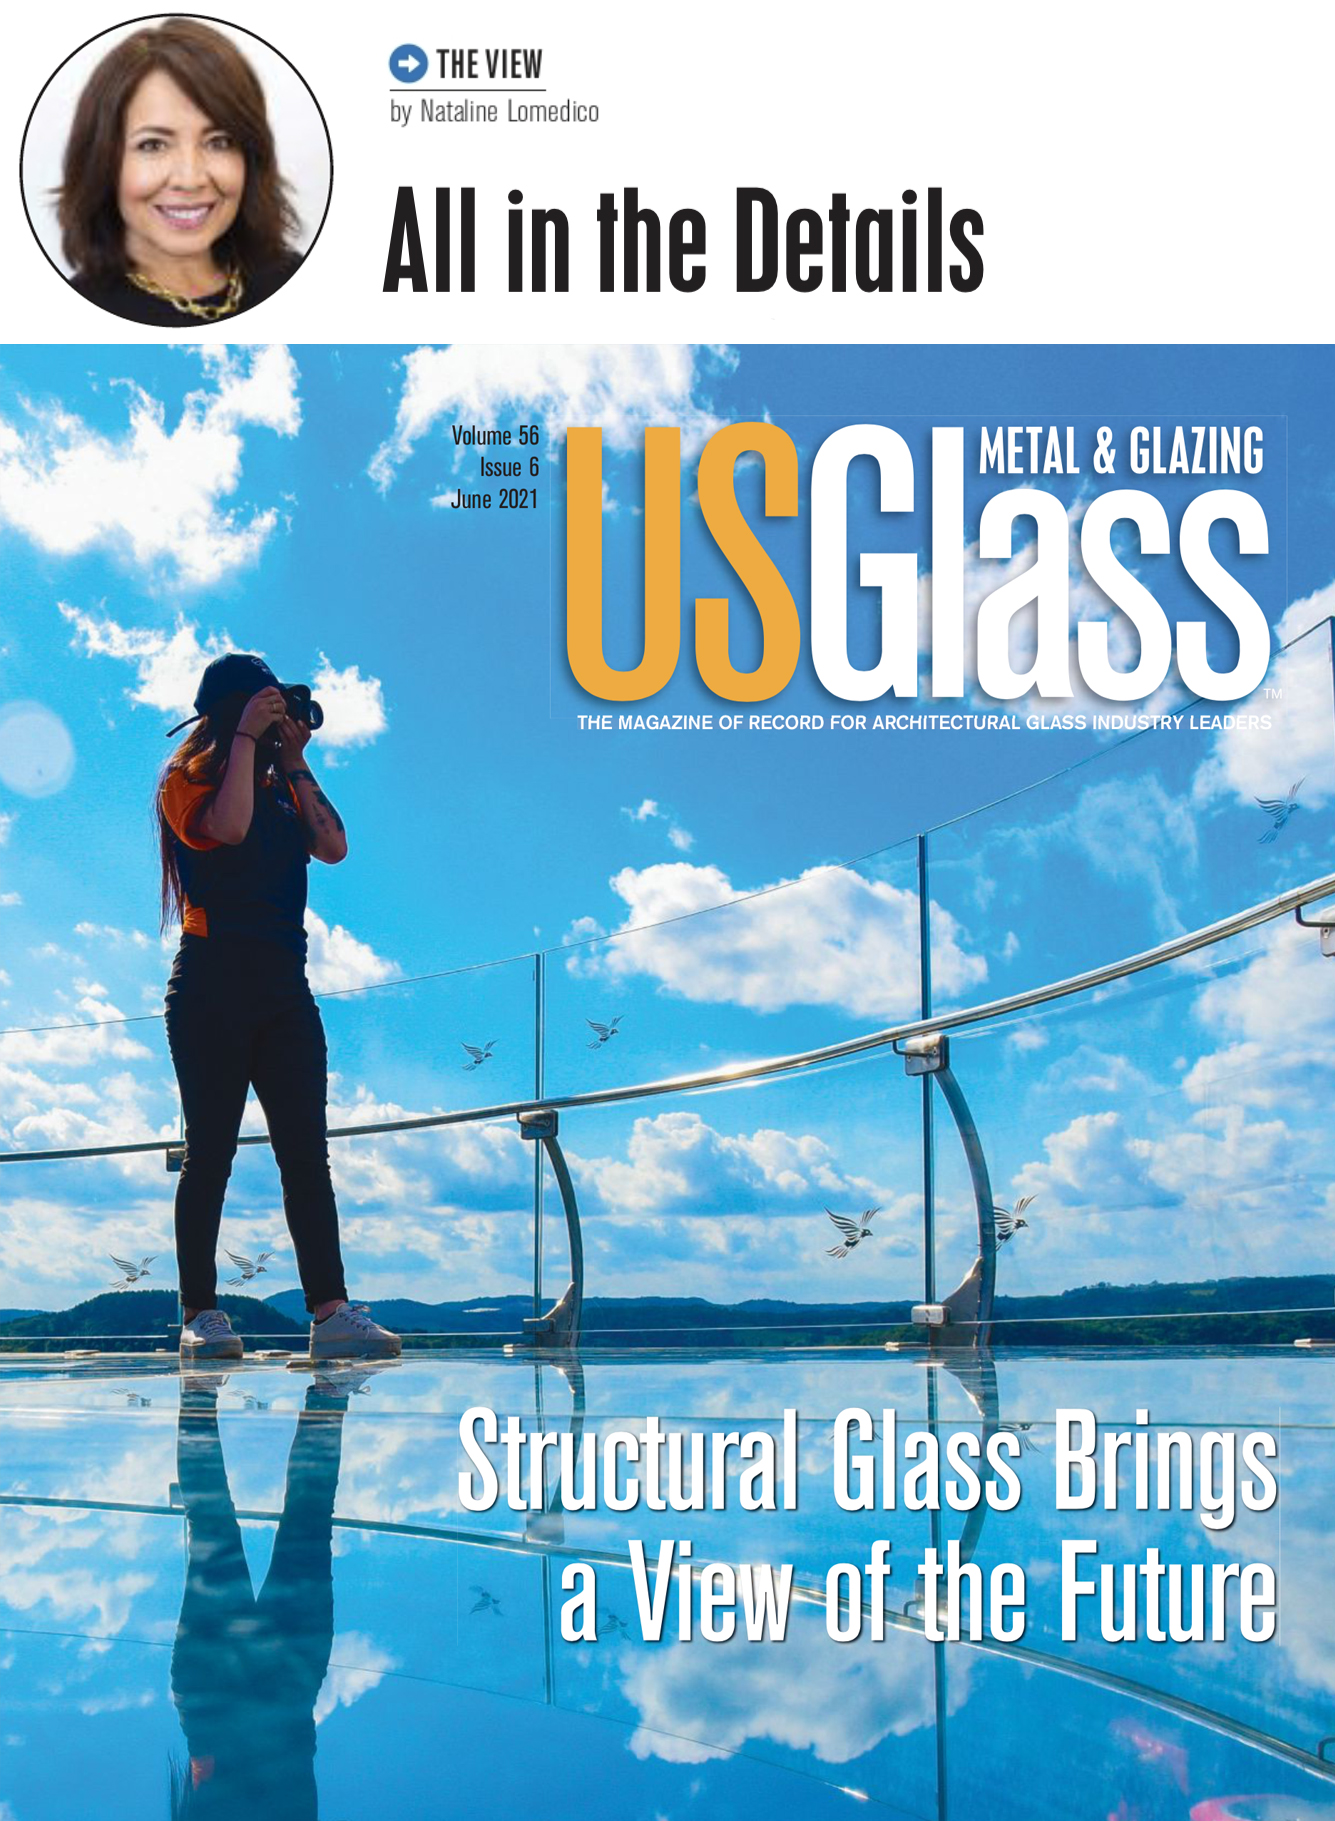 All in the Details: The View by Nataline Lomedico, CEO of Giroux Glass